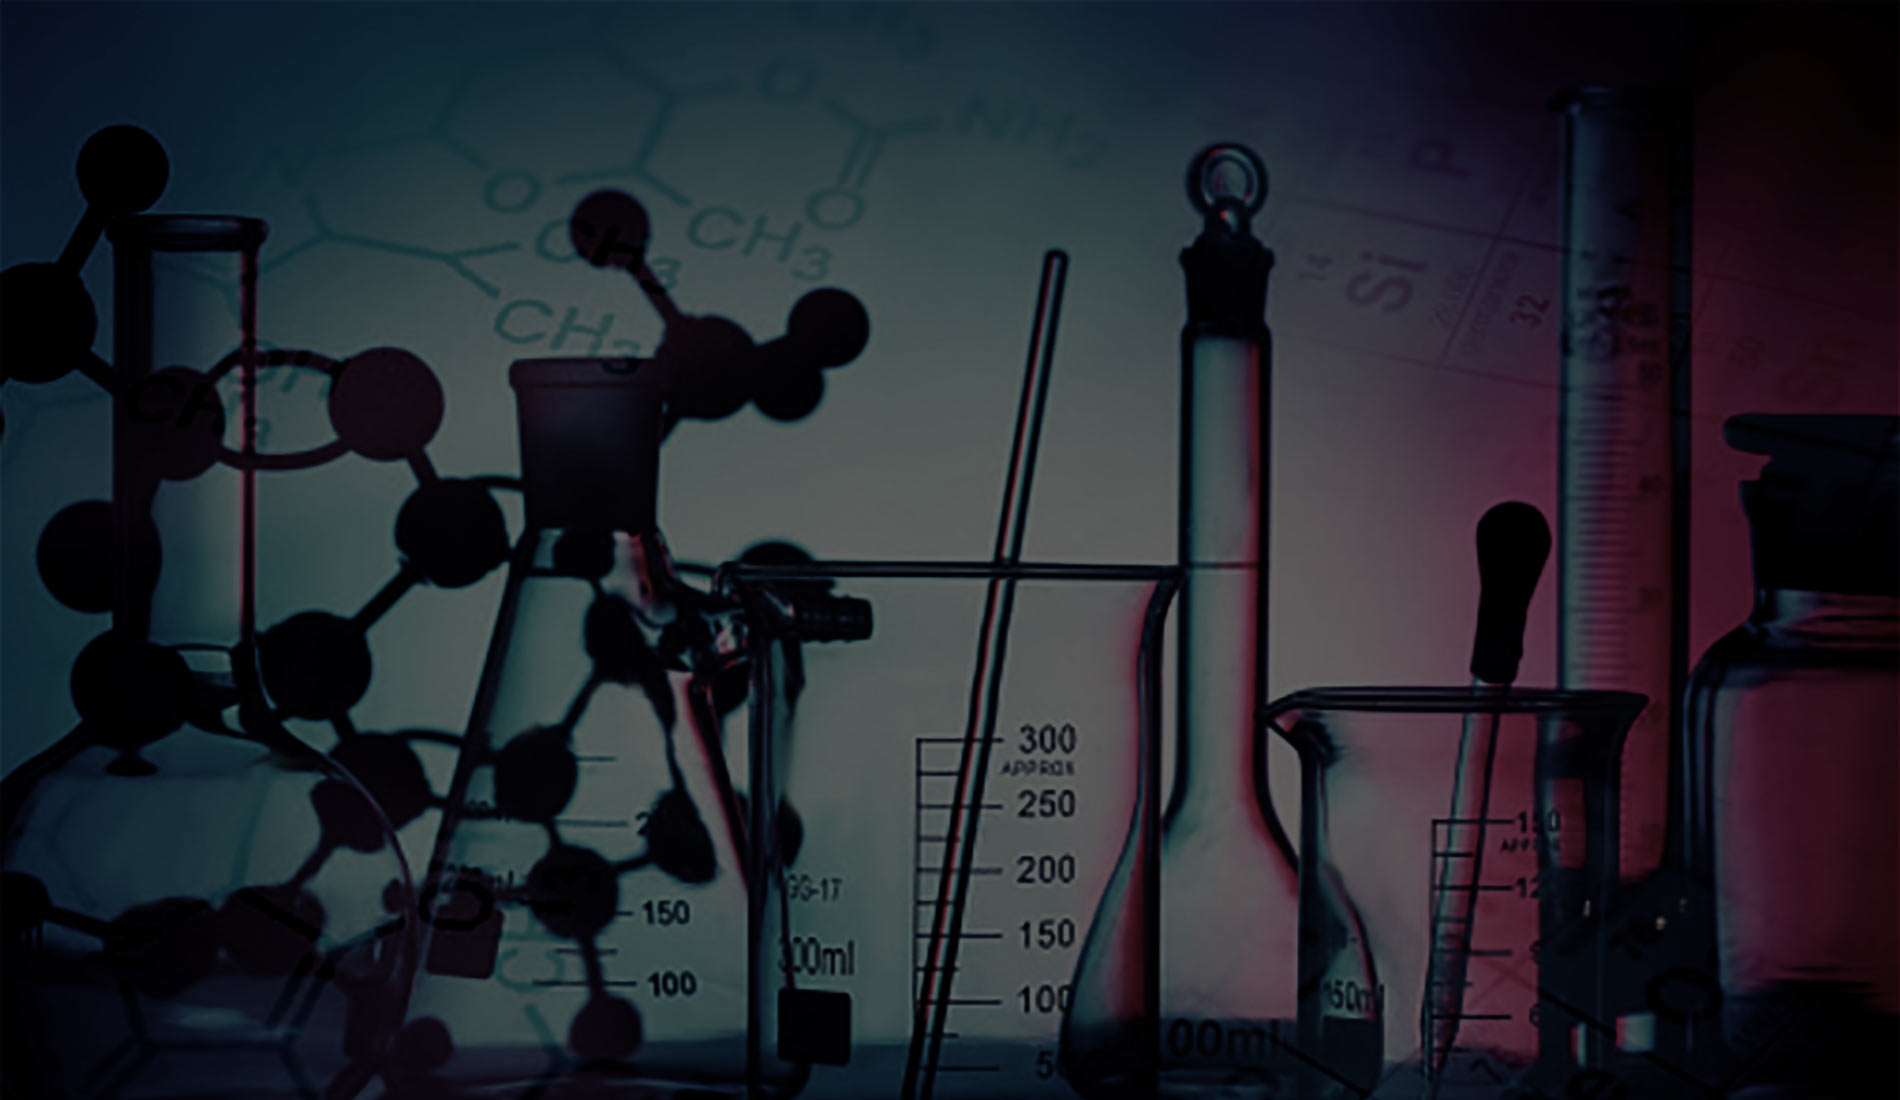 Demystifying the Science of Marketing Since 2010